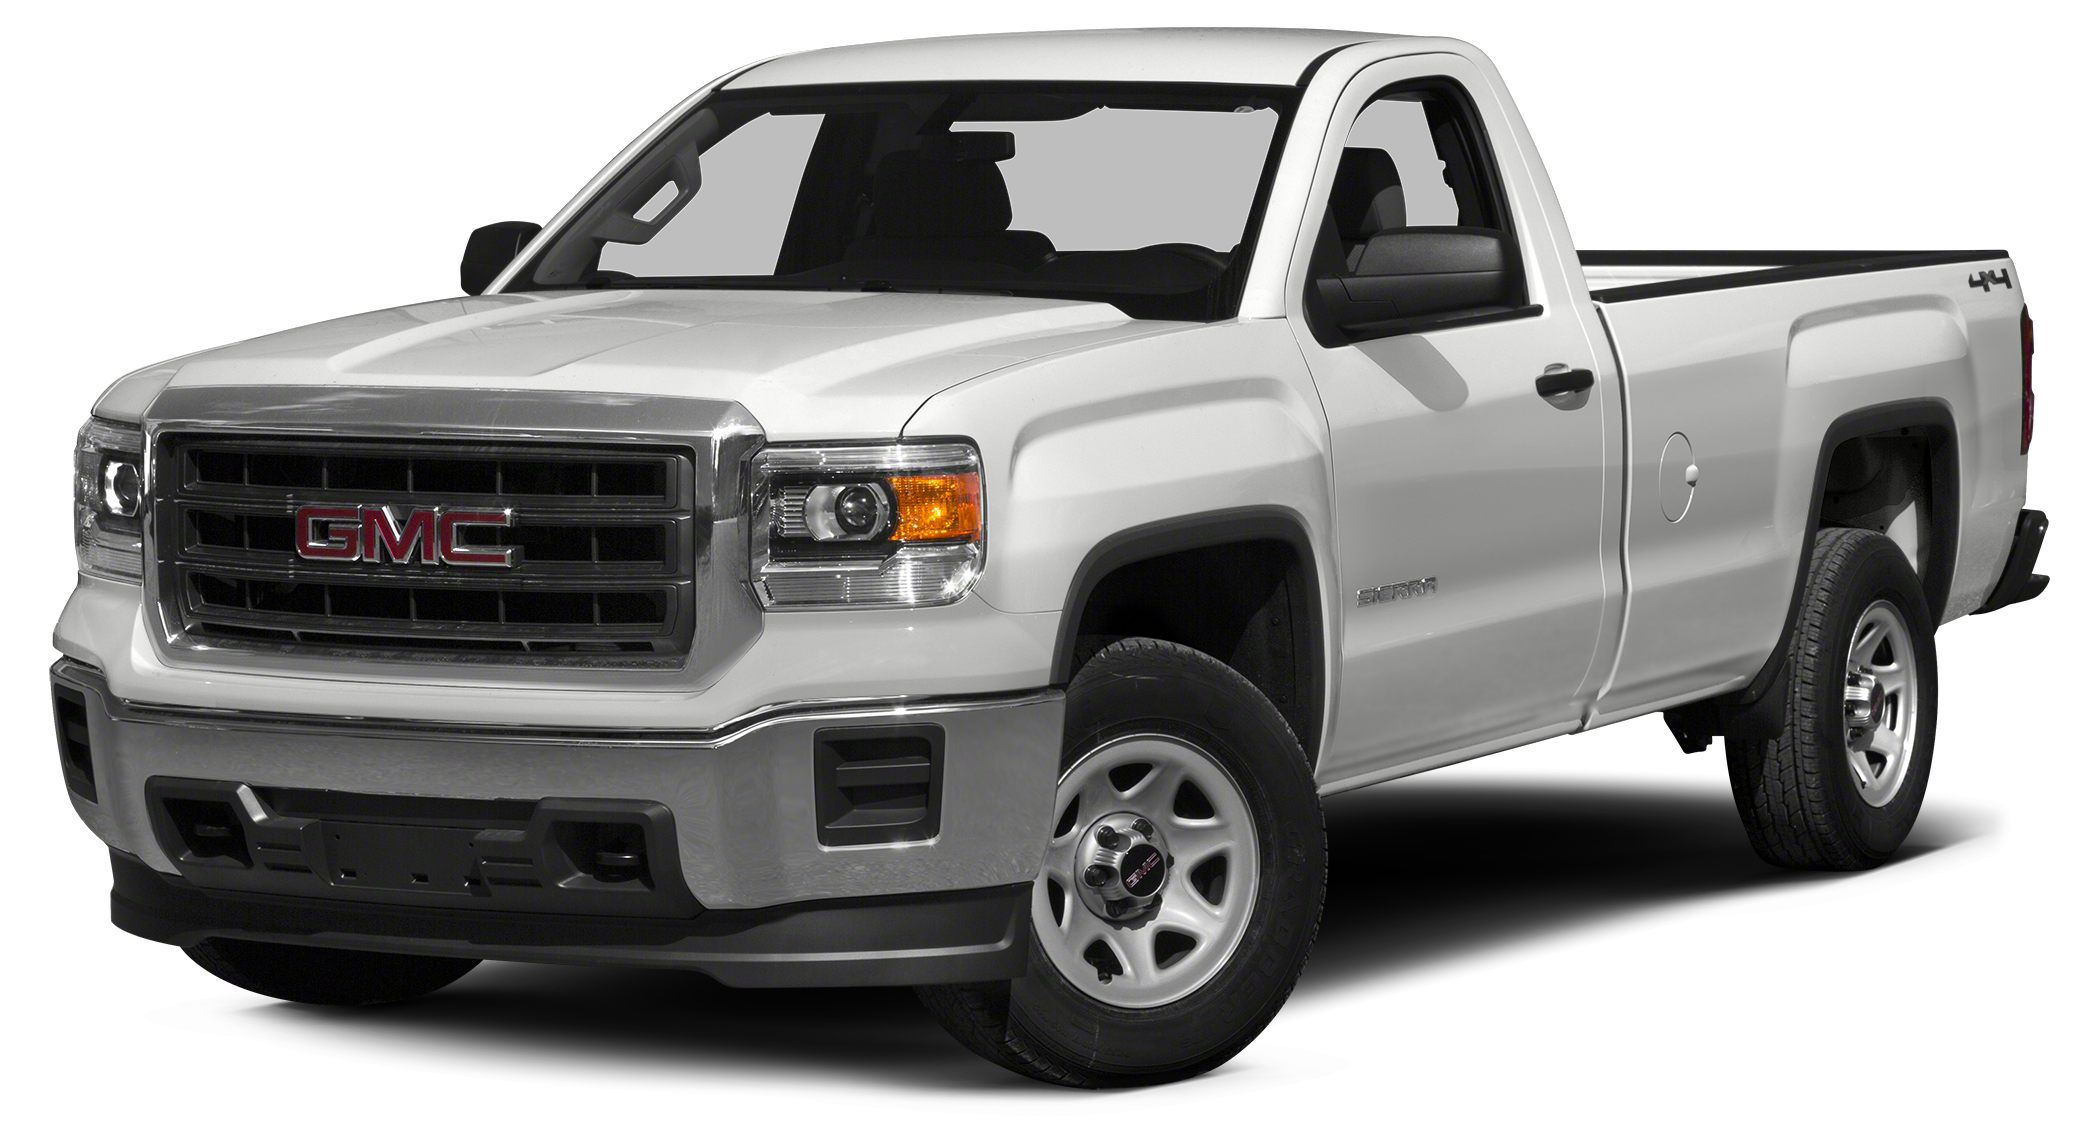 2015 GMC Sierra 1500 Base Snatch a bargain on this 2015 GMC Sierra 1500 REG CAB 2WD 119 before it